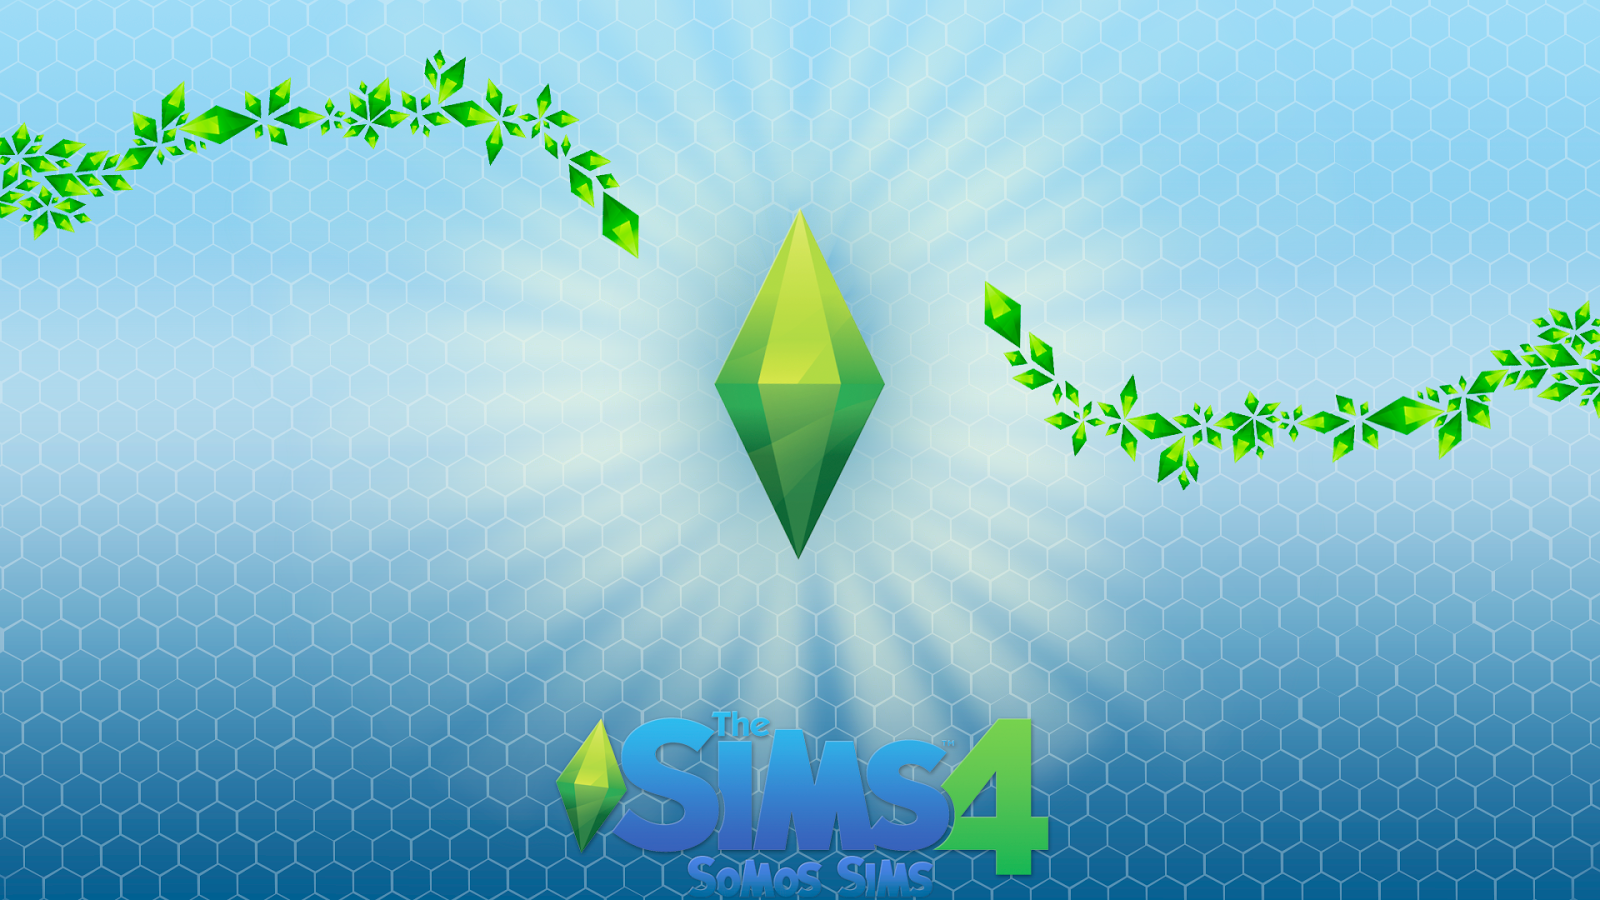 Sims 4 Wallpaper HD   Full HD Pictures